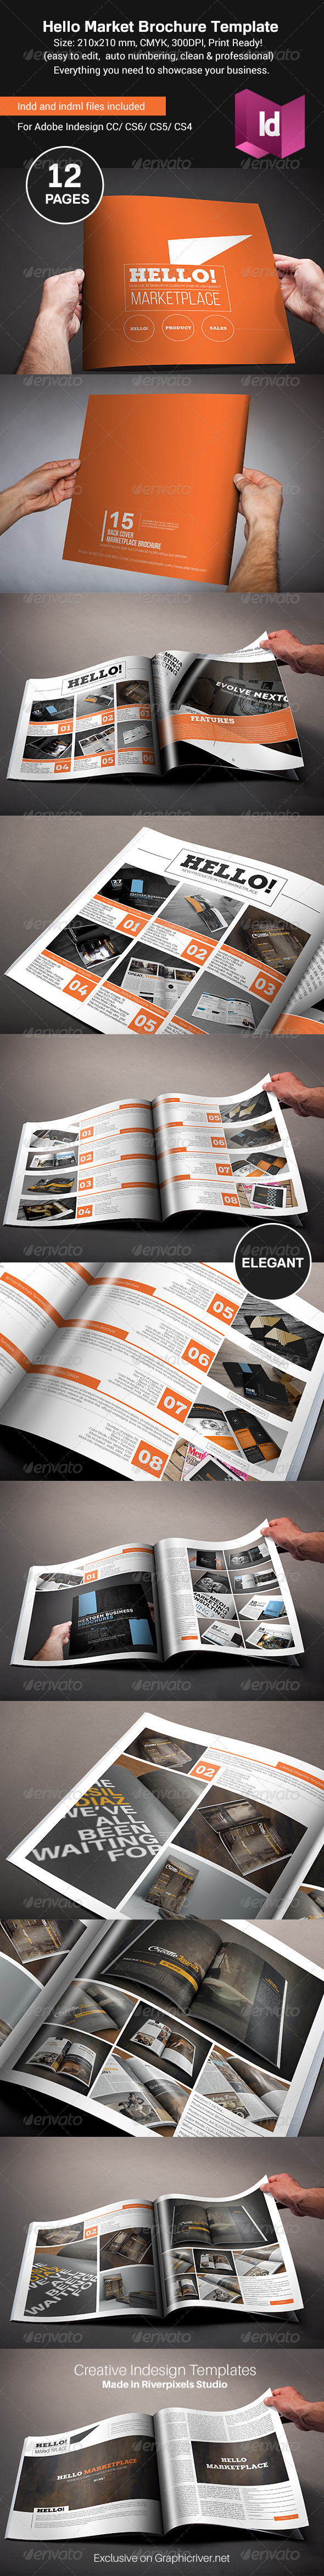 GraphicRiver Hello Market Brochure Template 8716774